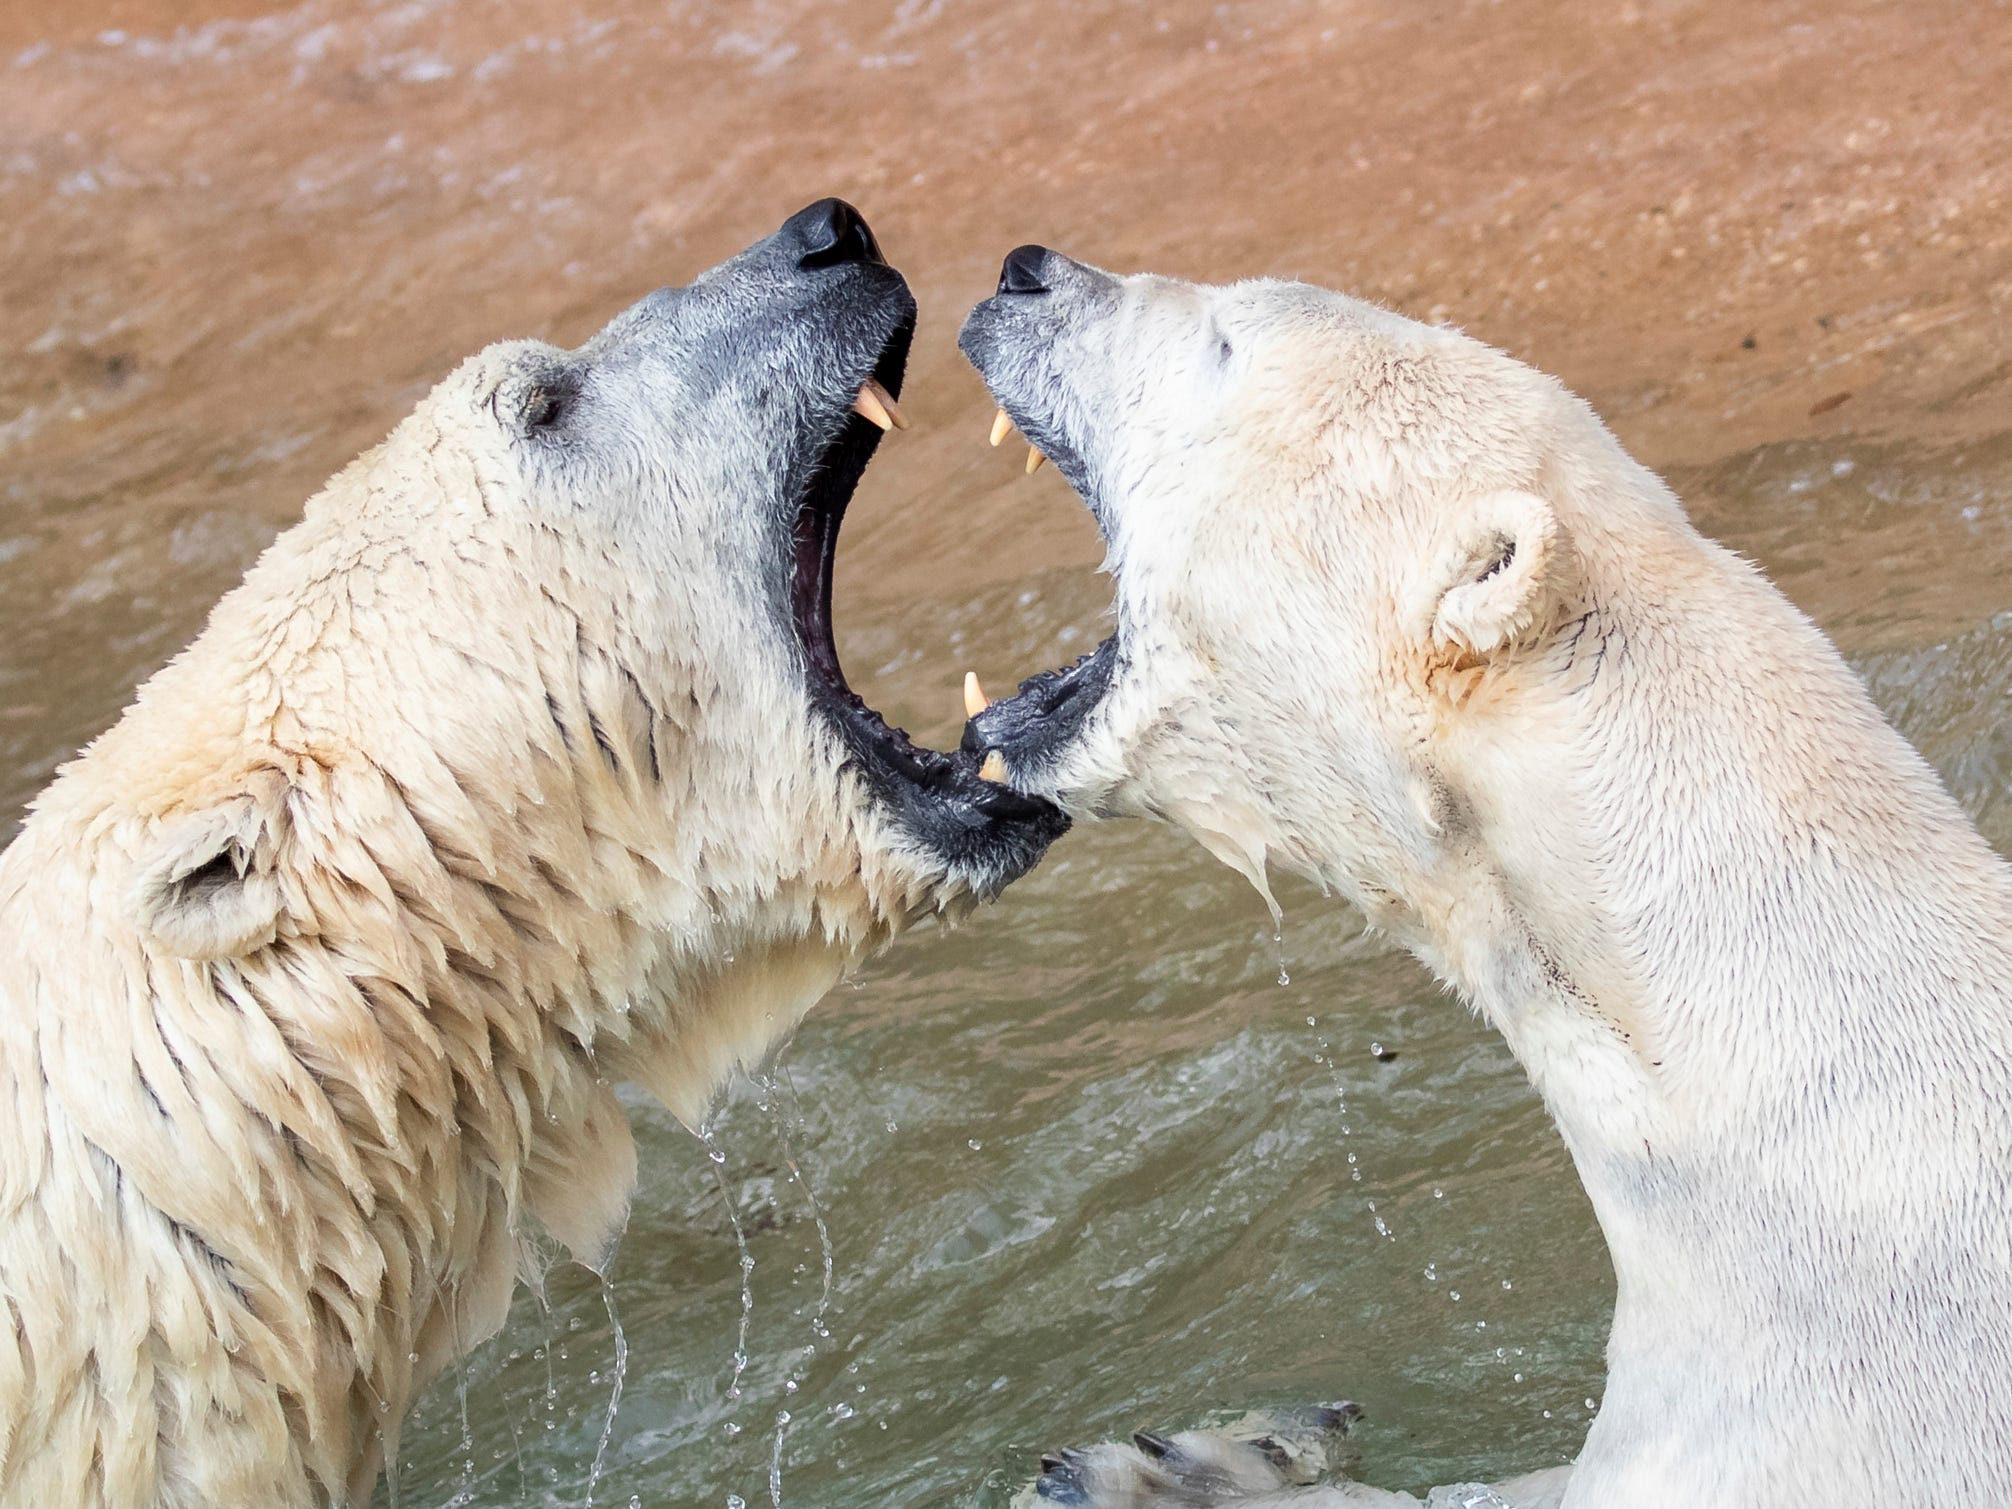 Polar bears Nanuq and Vera play in their enclosure at the 'Tierpark' zoo of Nuremberg, Germany, Thursday, April 11, 2019.